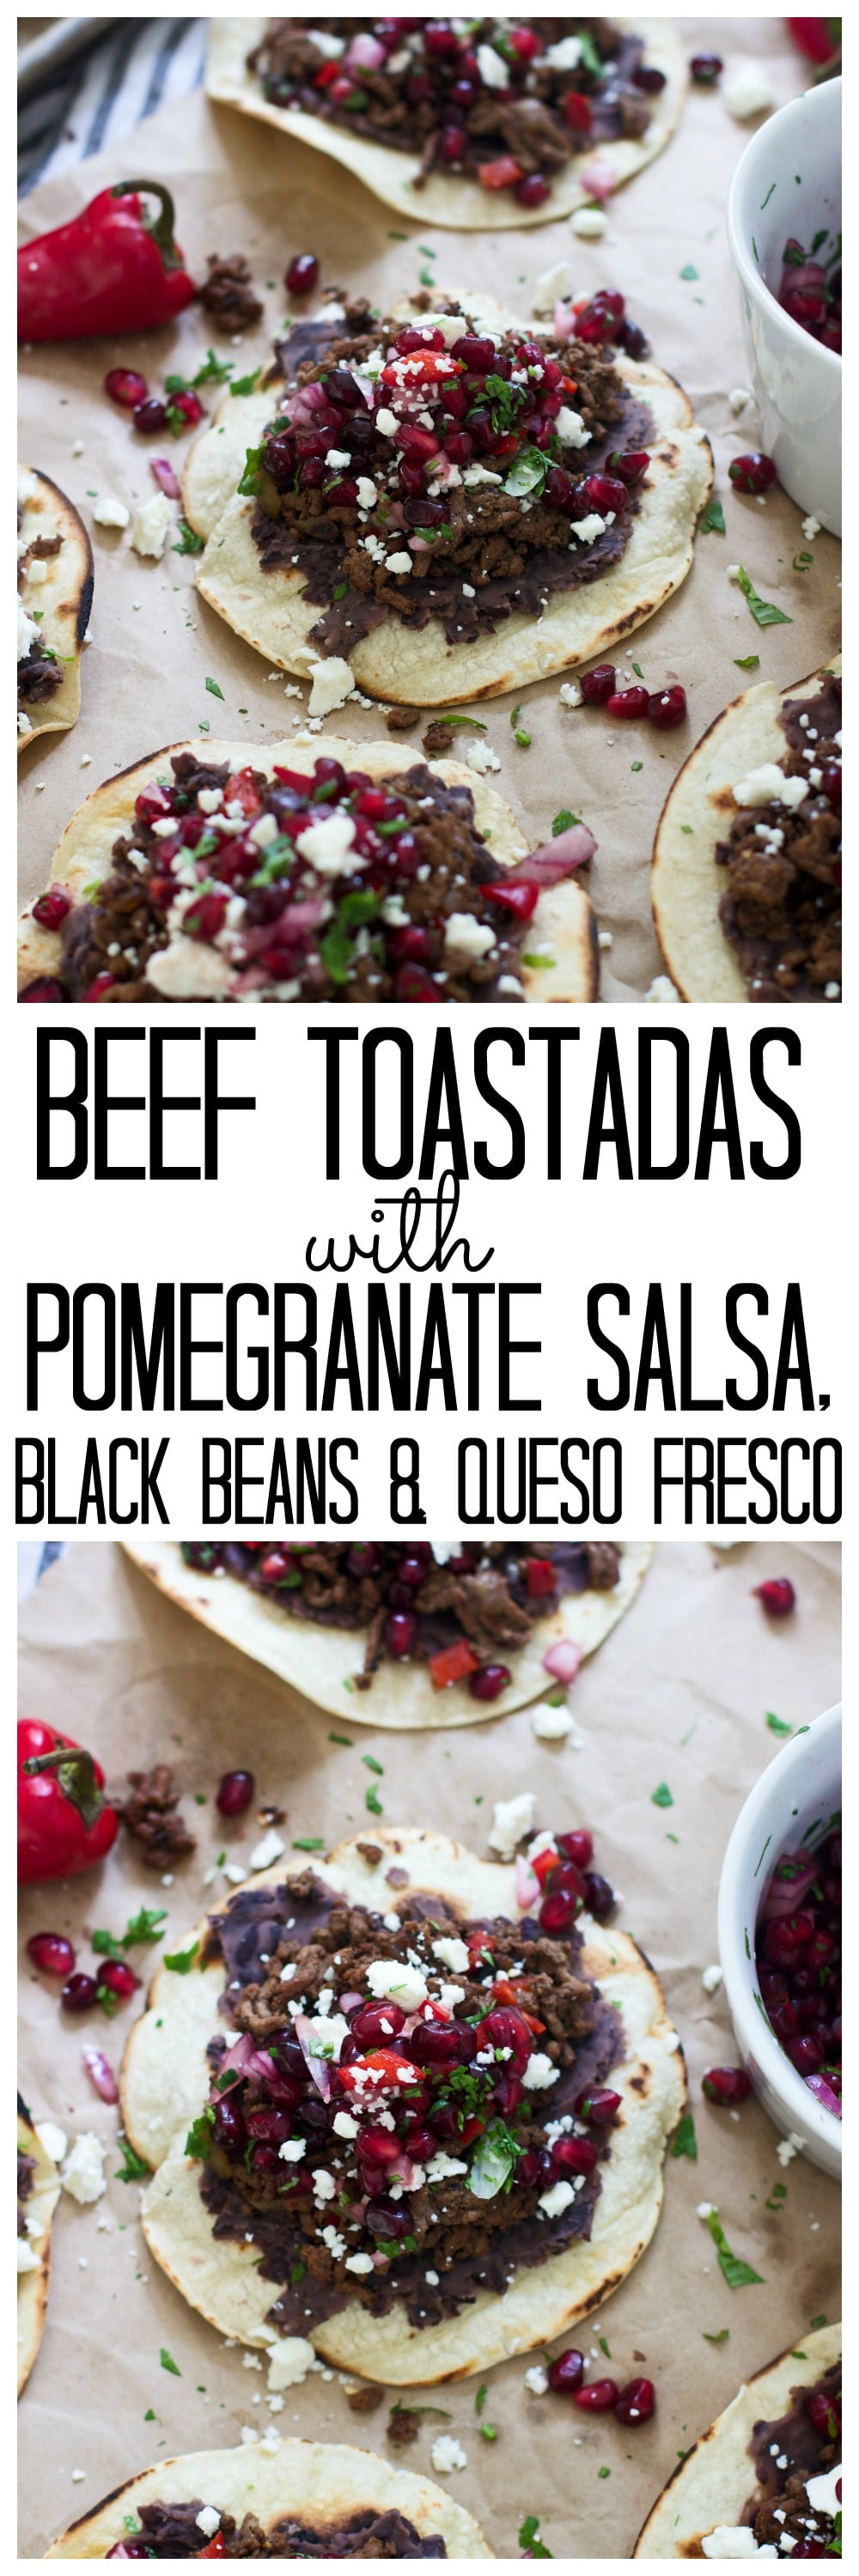 Beef Tostadas with Pomegranate Salsa, Black Beans and Queso Fresco